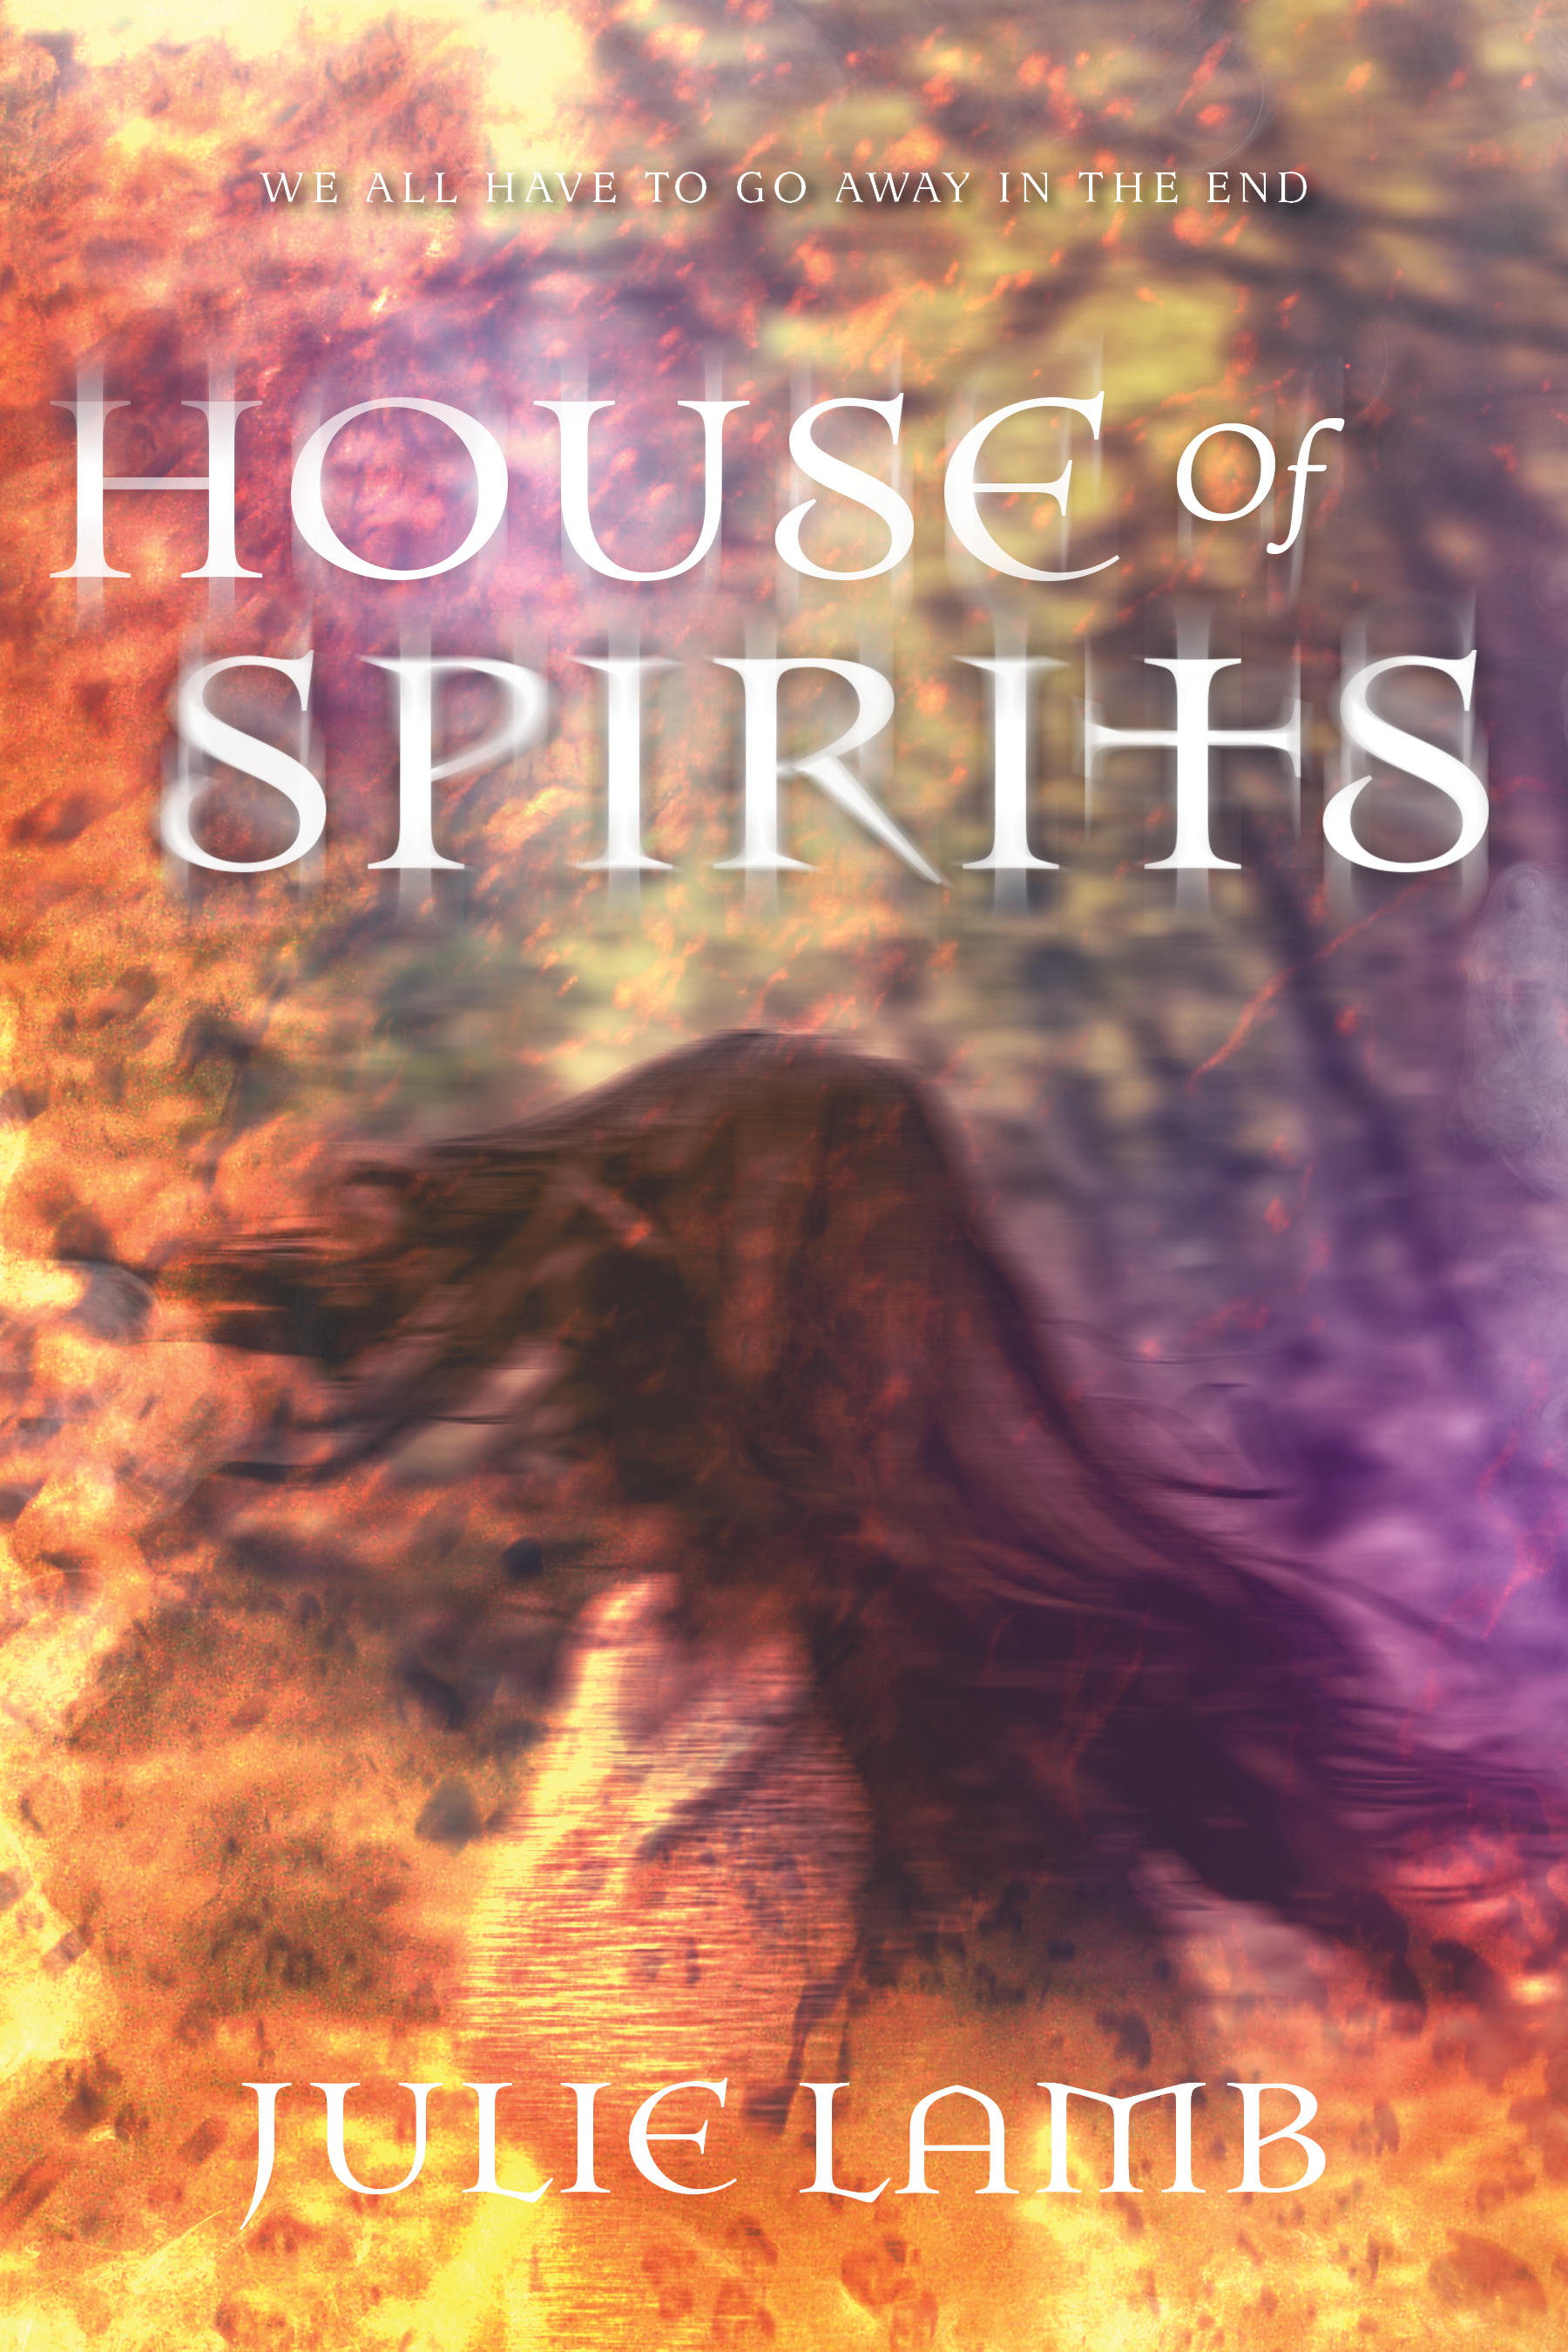 House of Spirirts cover.jpg